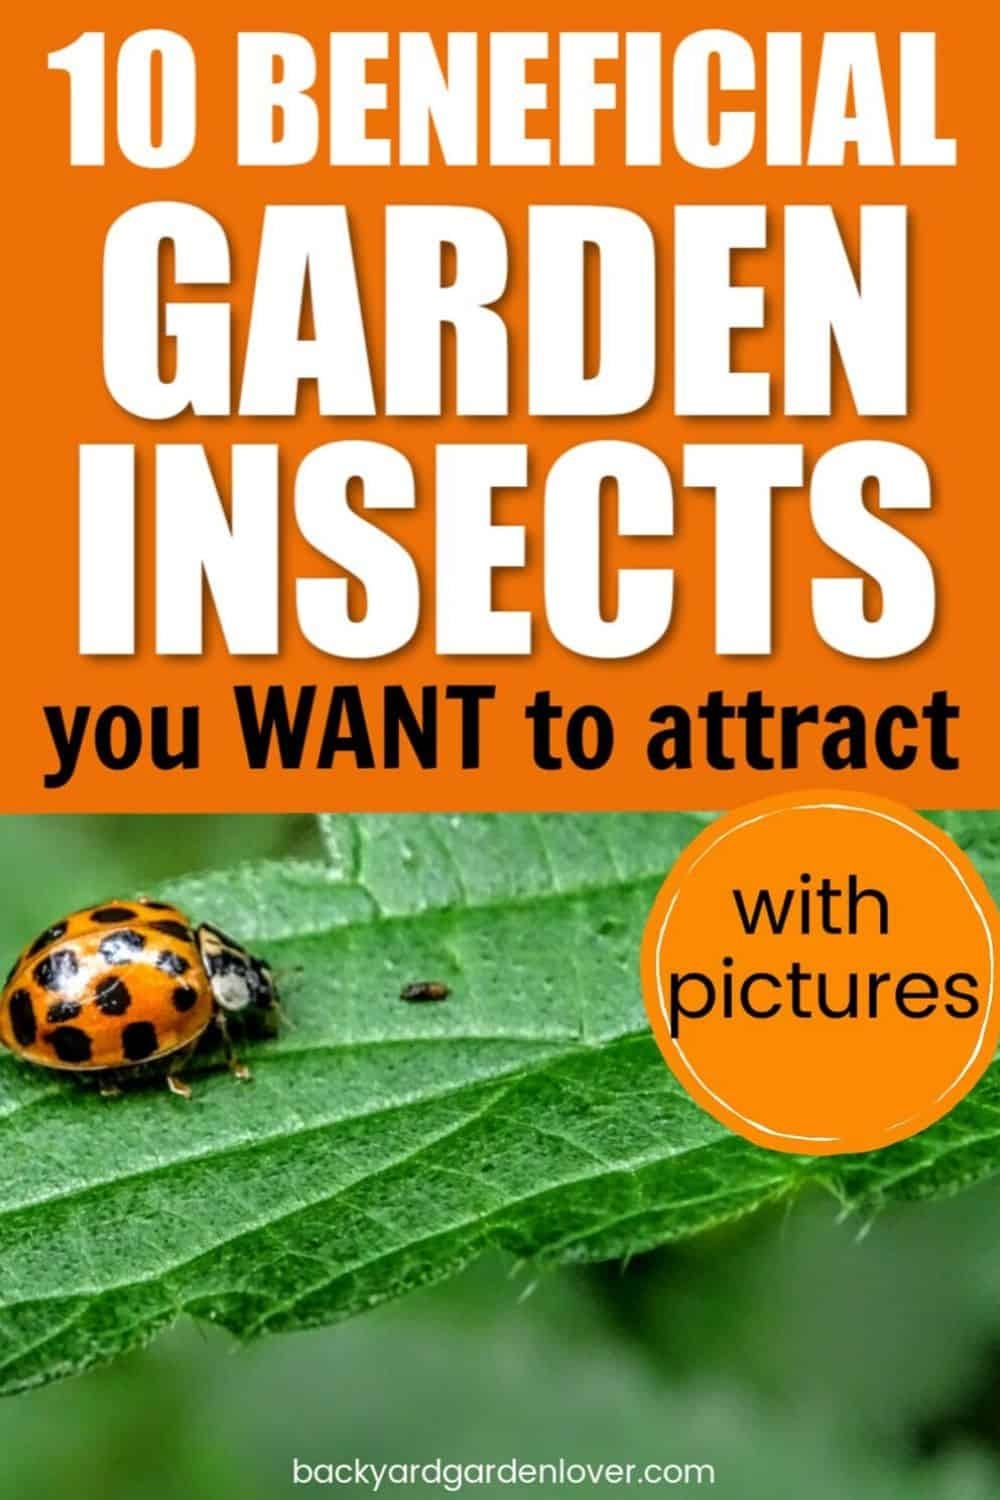 Ladybug, one of the best beneficial garden insects